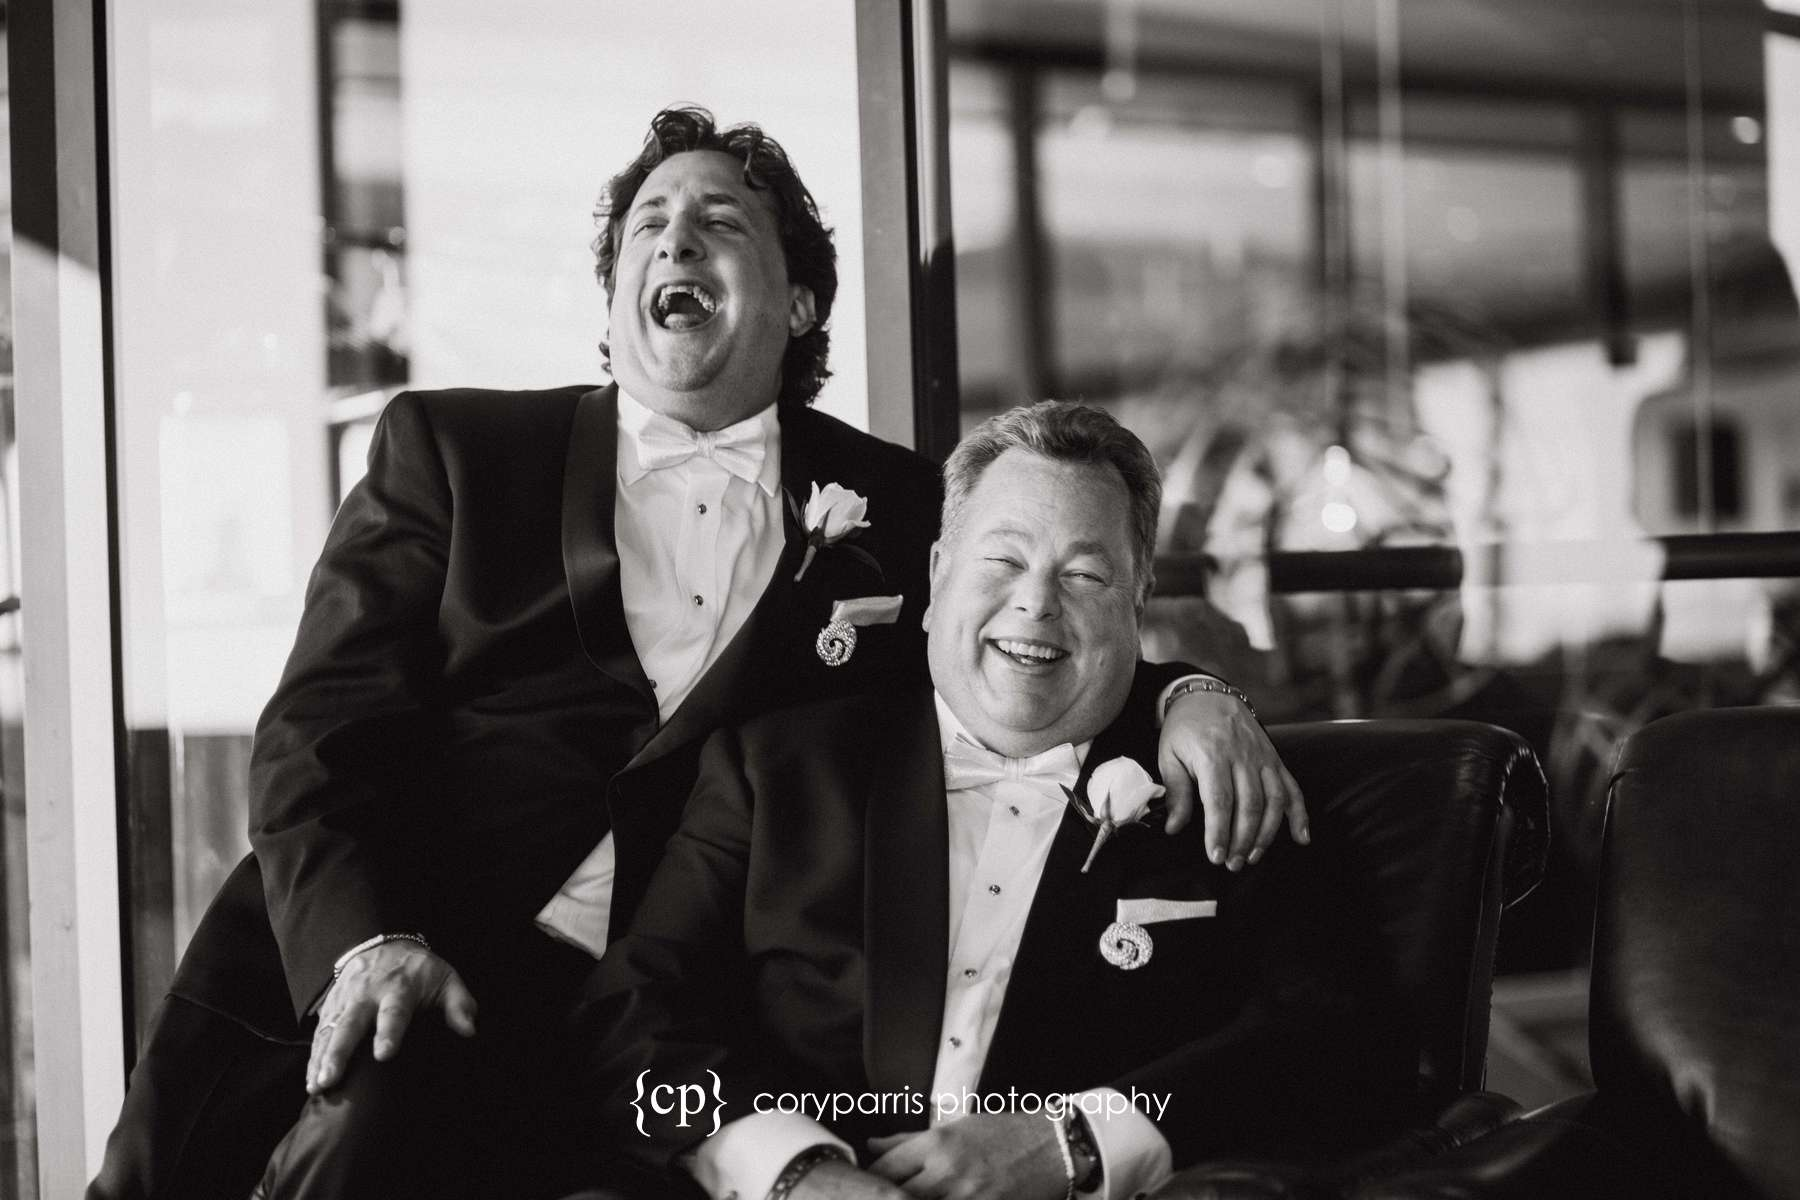 Two grooms laughing together